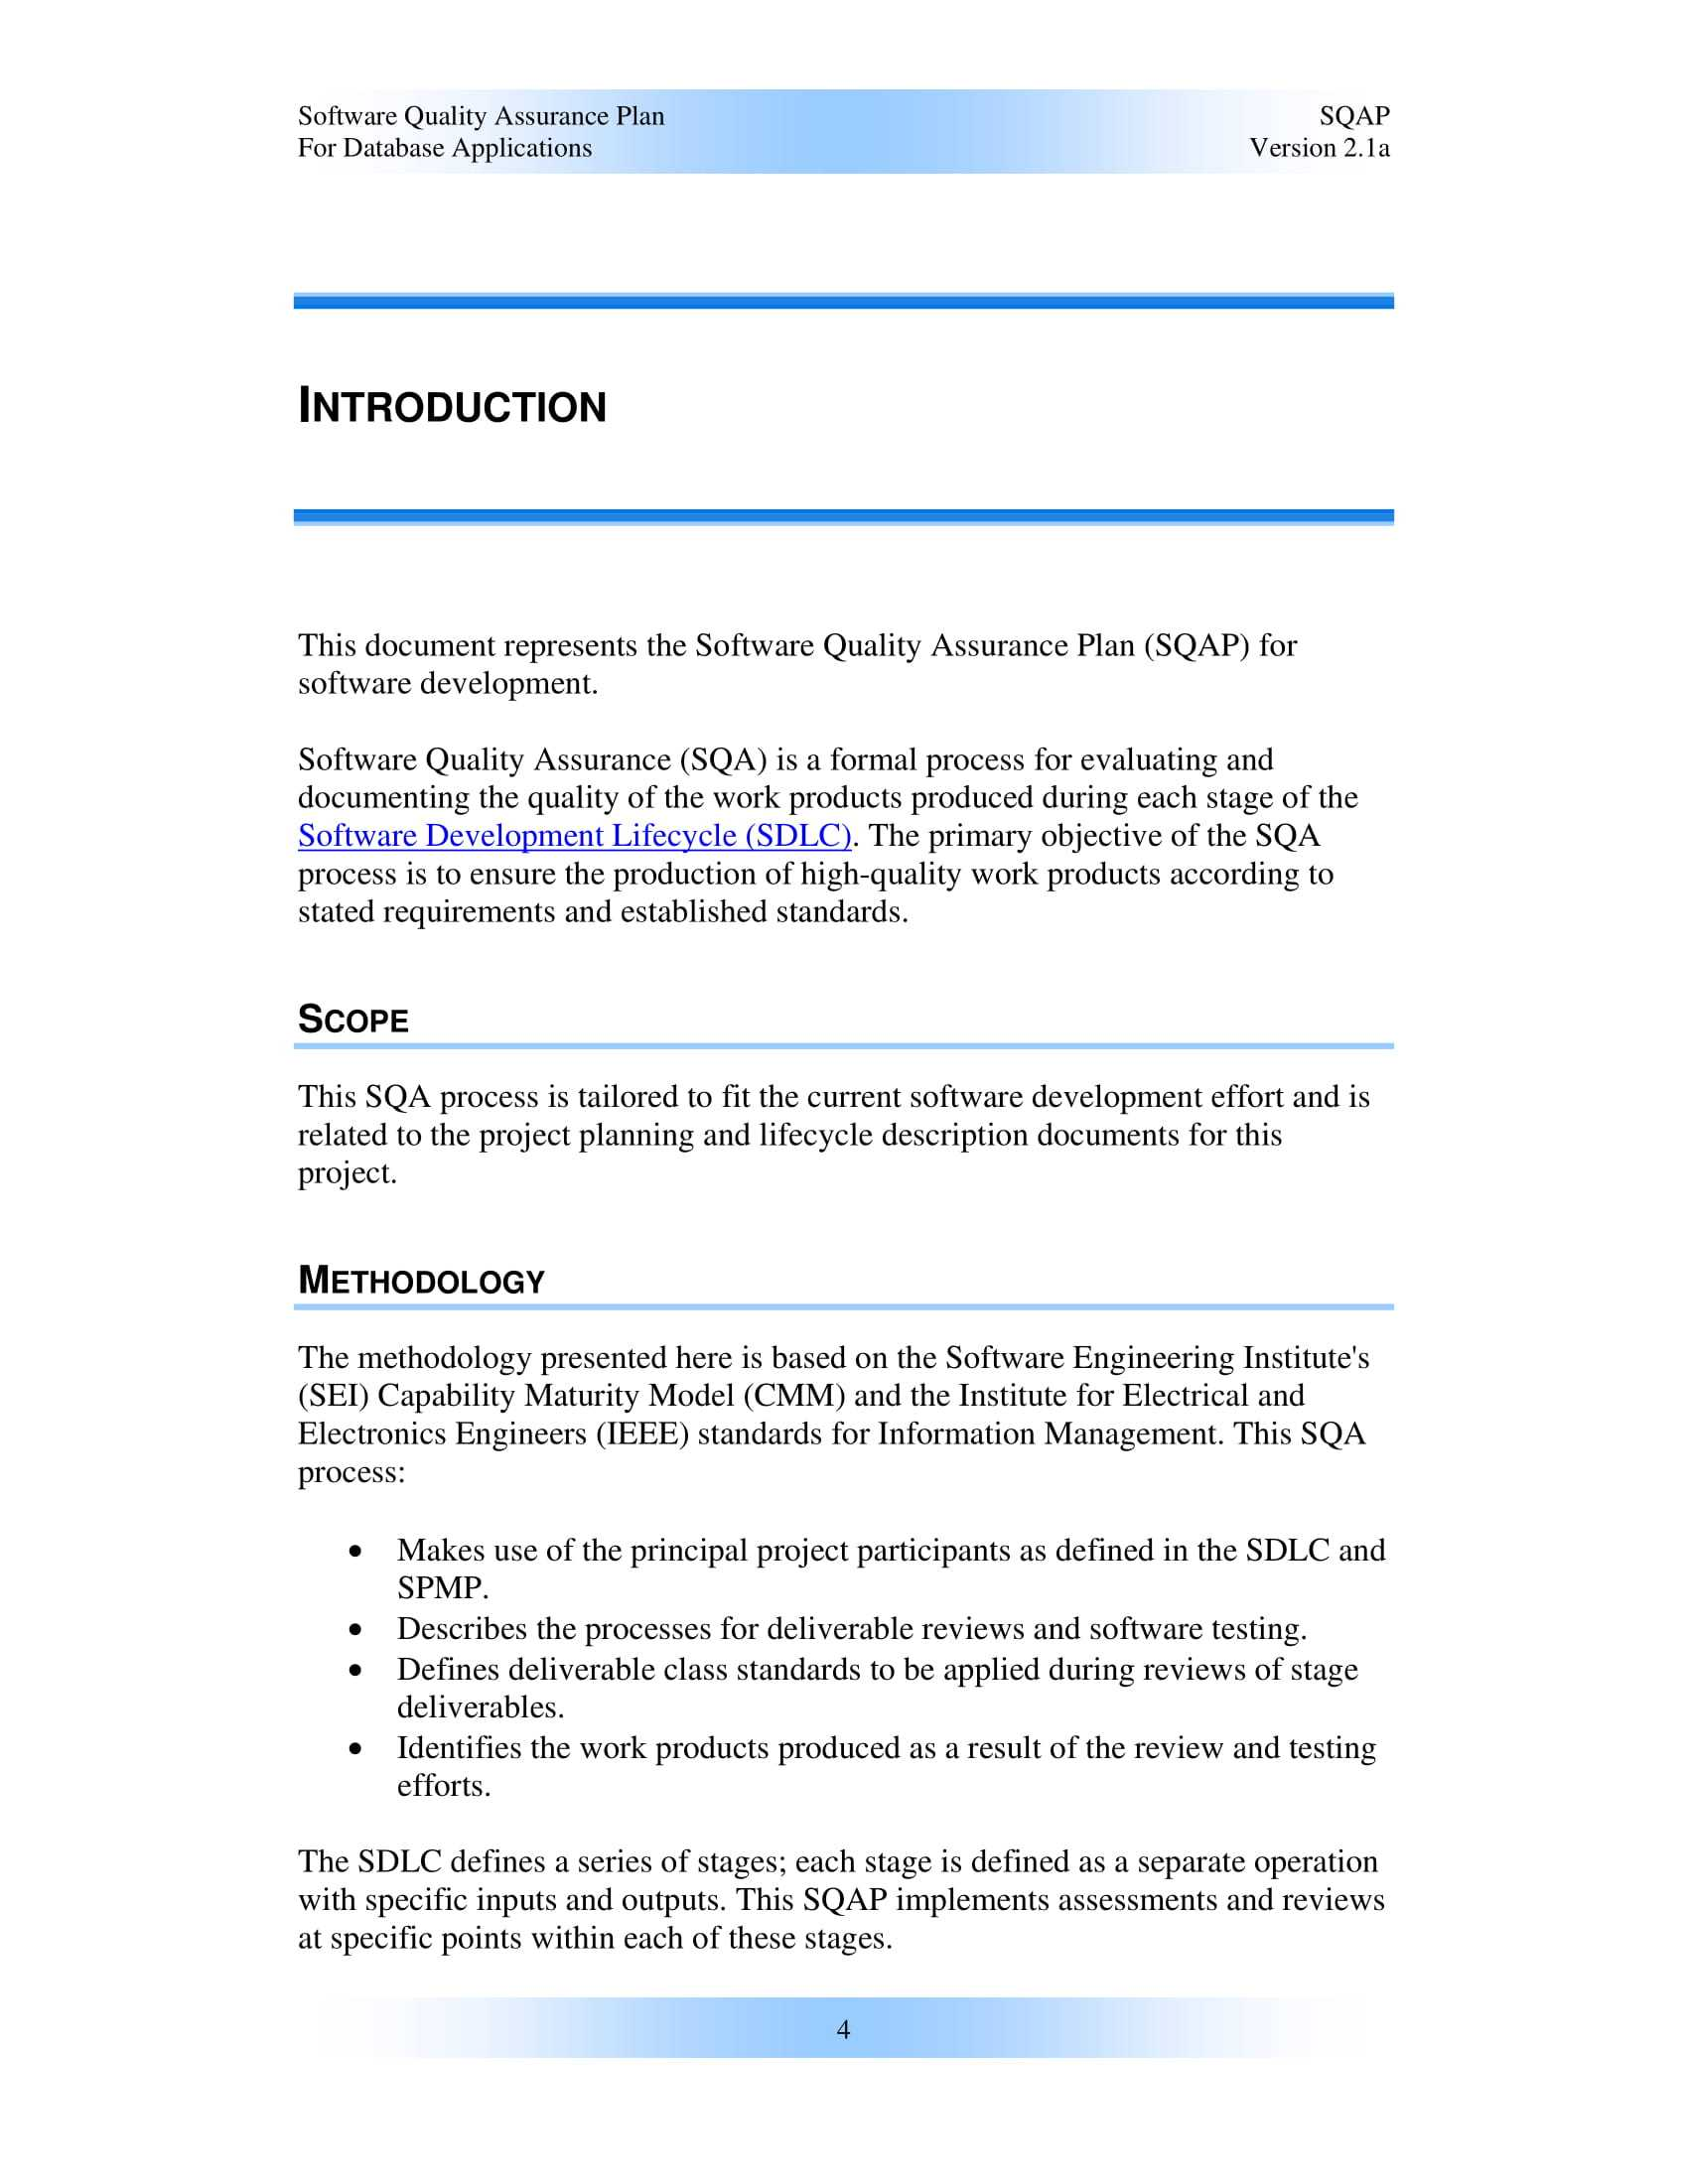 9+ Software Quality Assurance Plan Examples - Pdf | Examples Throughout Software Quality Assurance Report Template